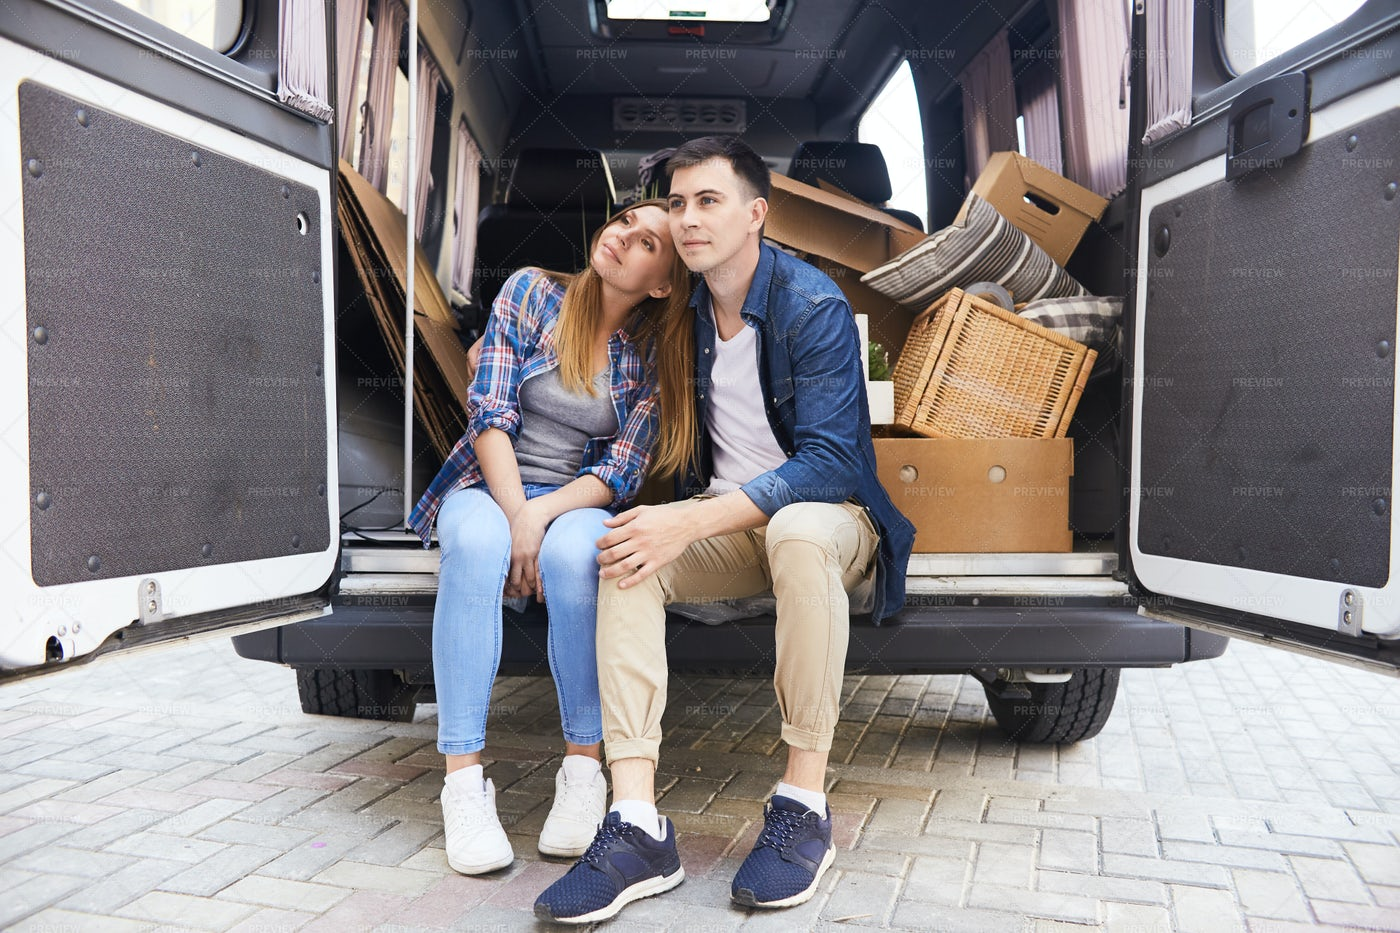 Couple Moving To New Life: Stock Photos